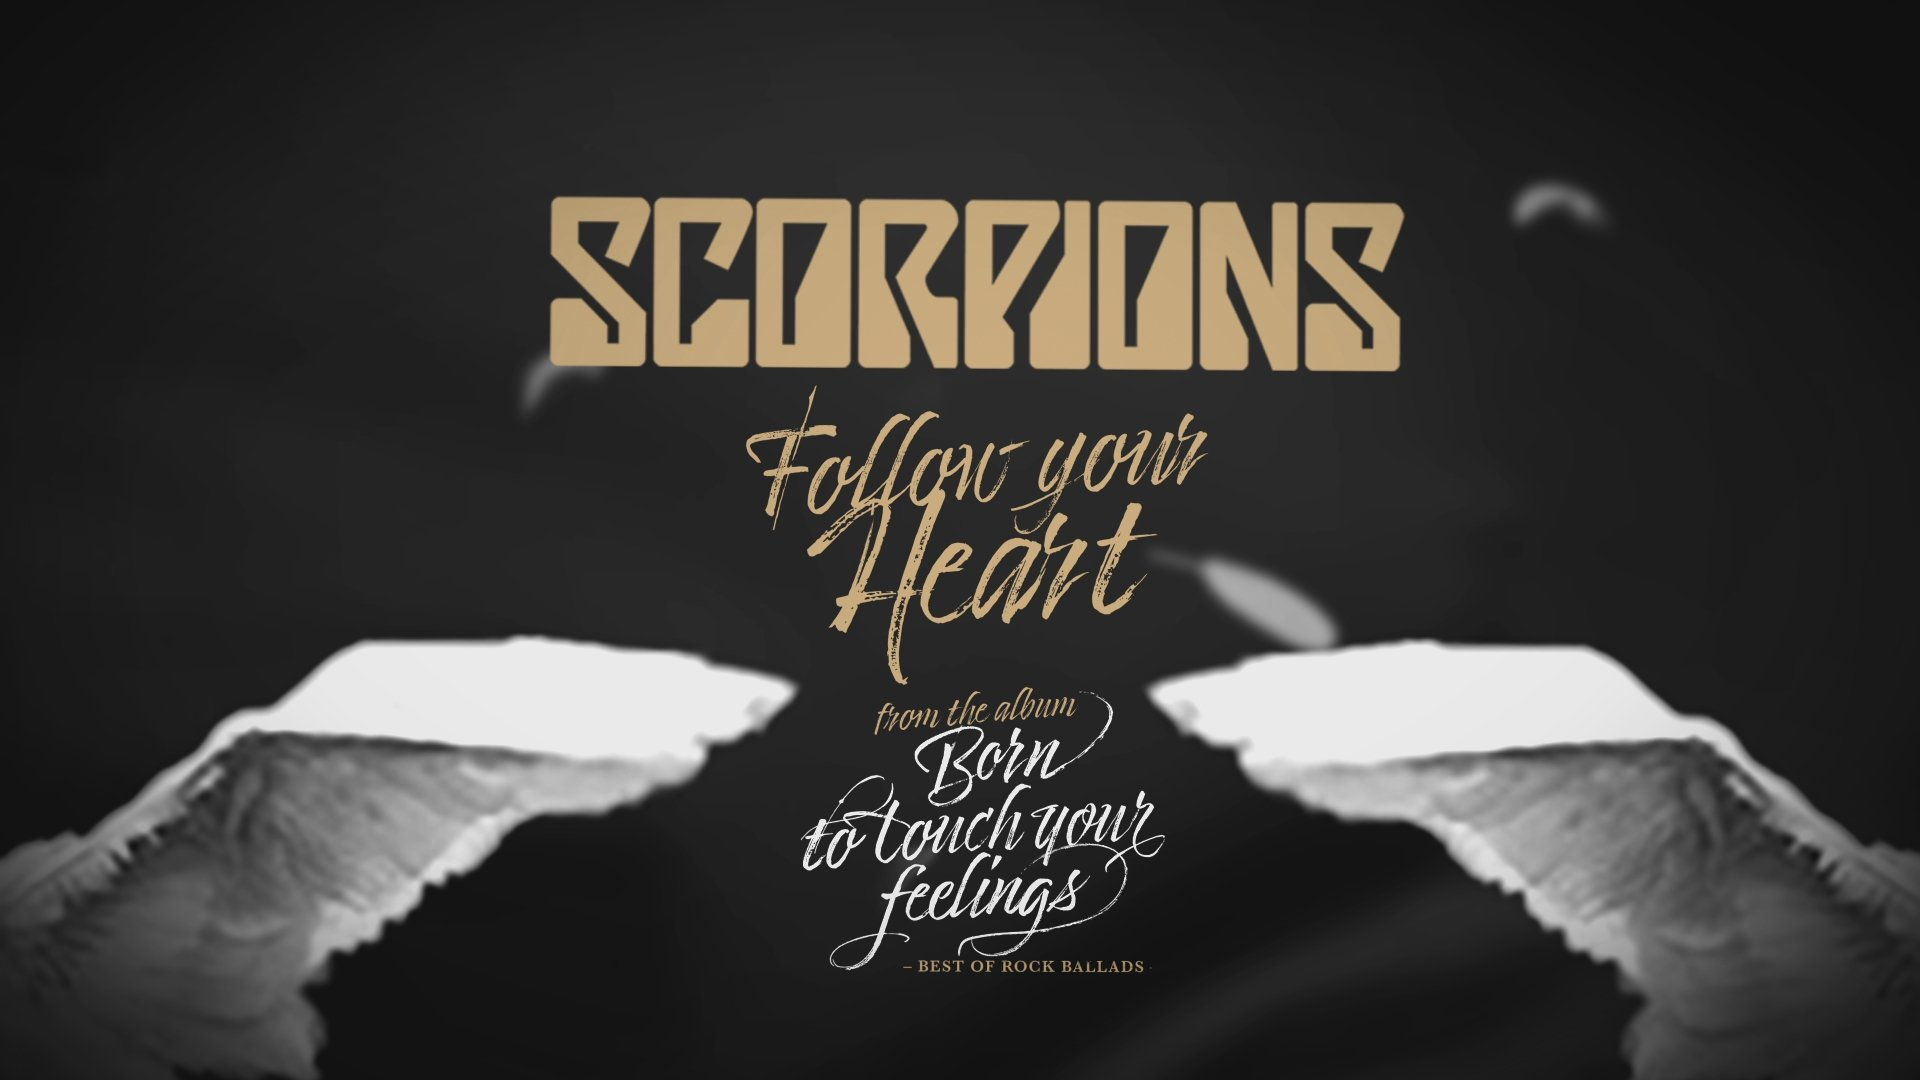 Follow Your Heart Scorpions Follow Your Heart Official Lyric Video Youtube